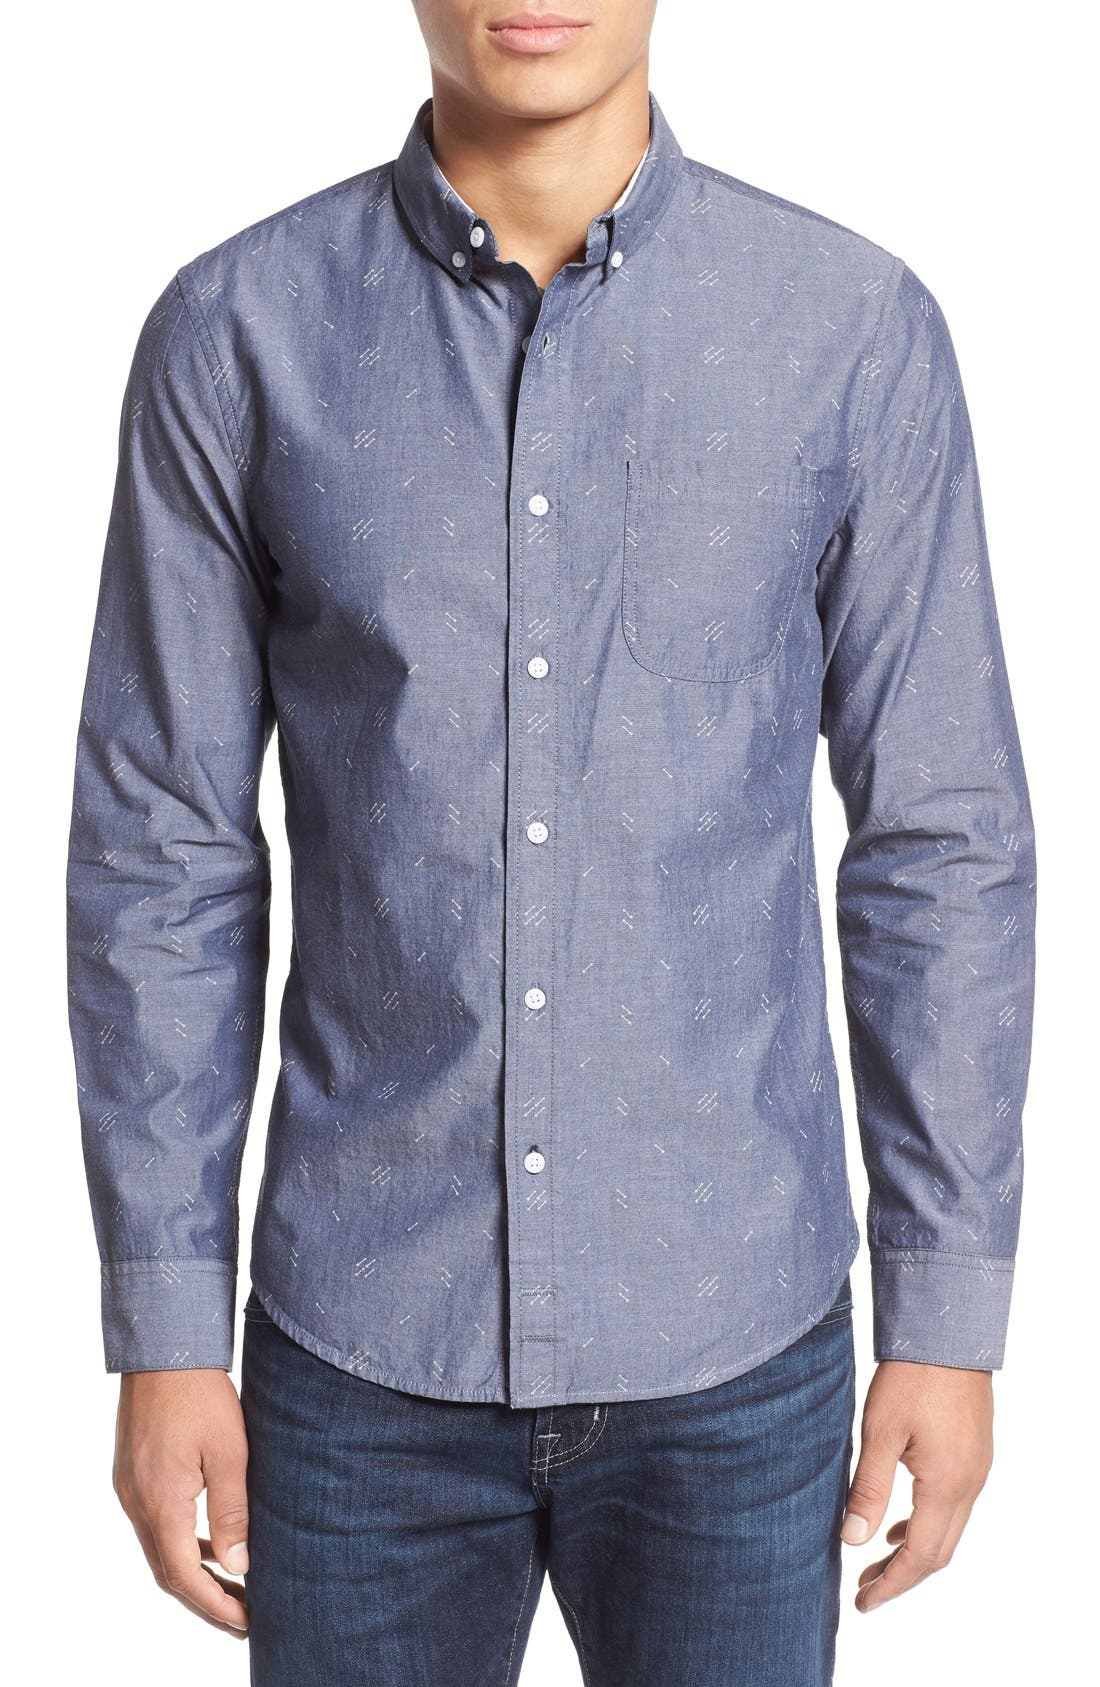 'Baker' Slim Fit Arrow Print Woven Shirt,                         Main,                         color, Navy Iris Arrows Print